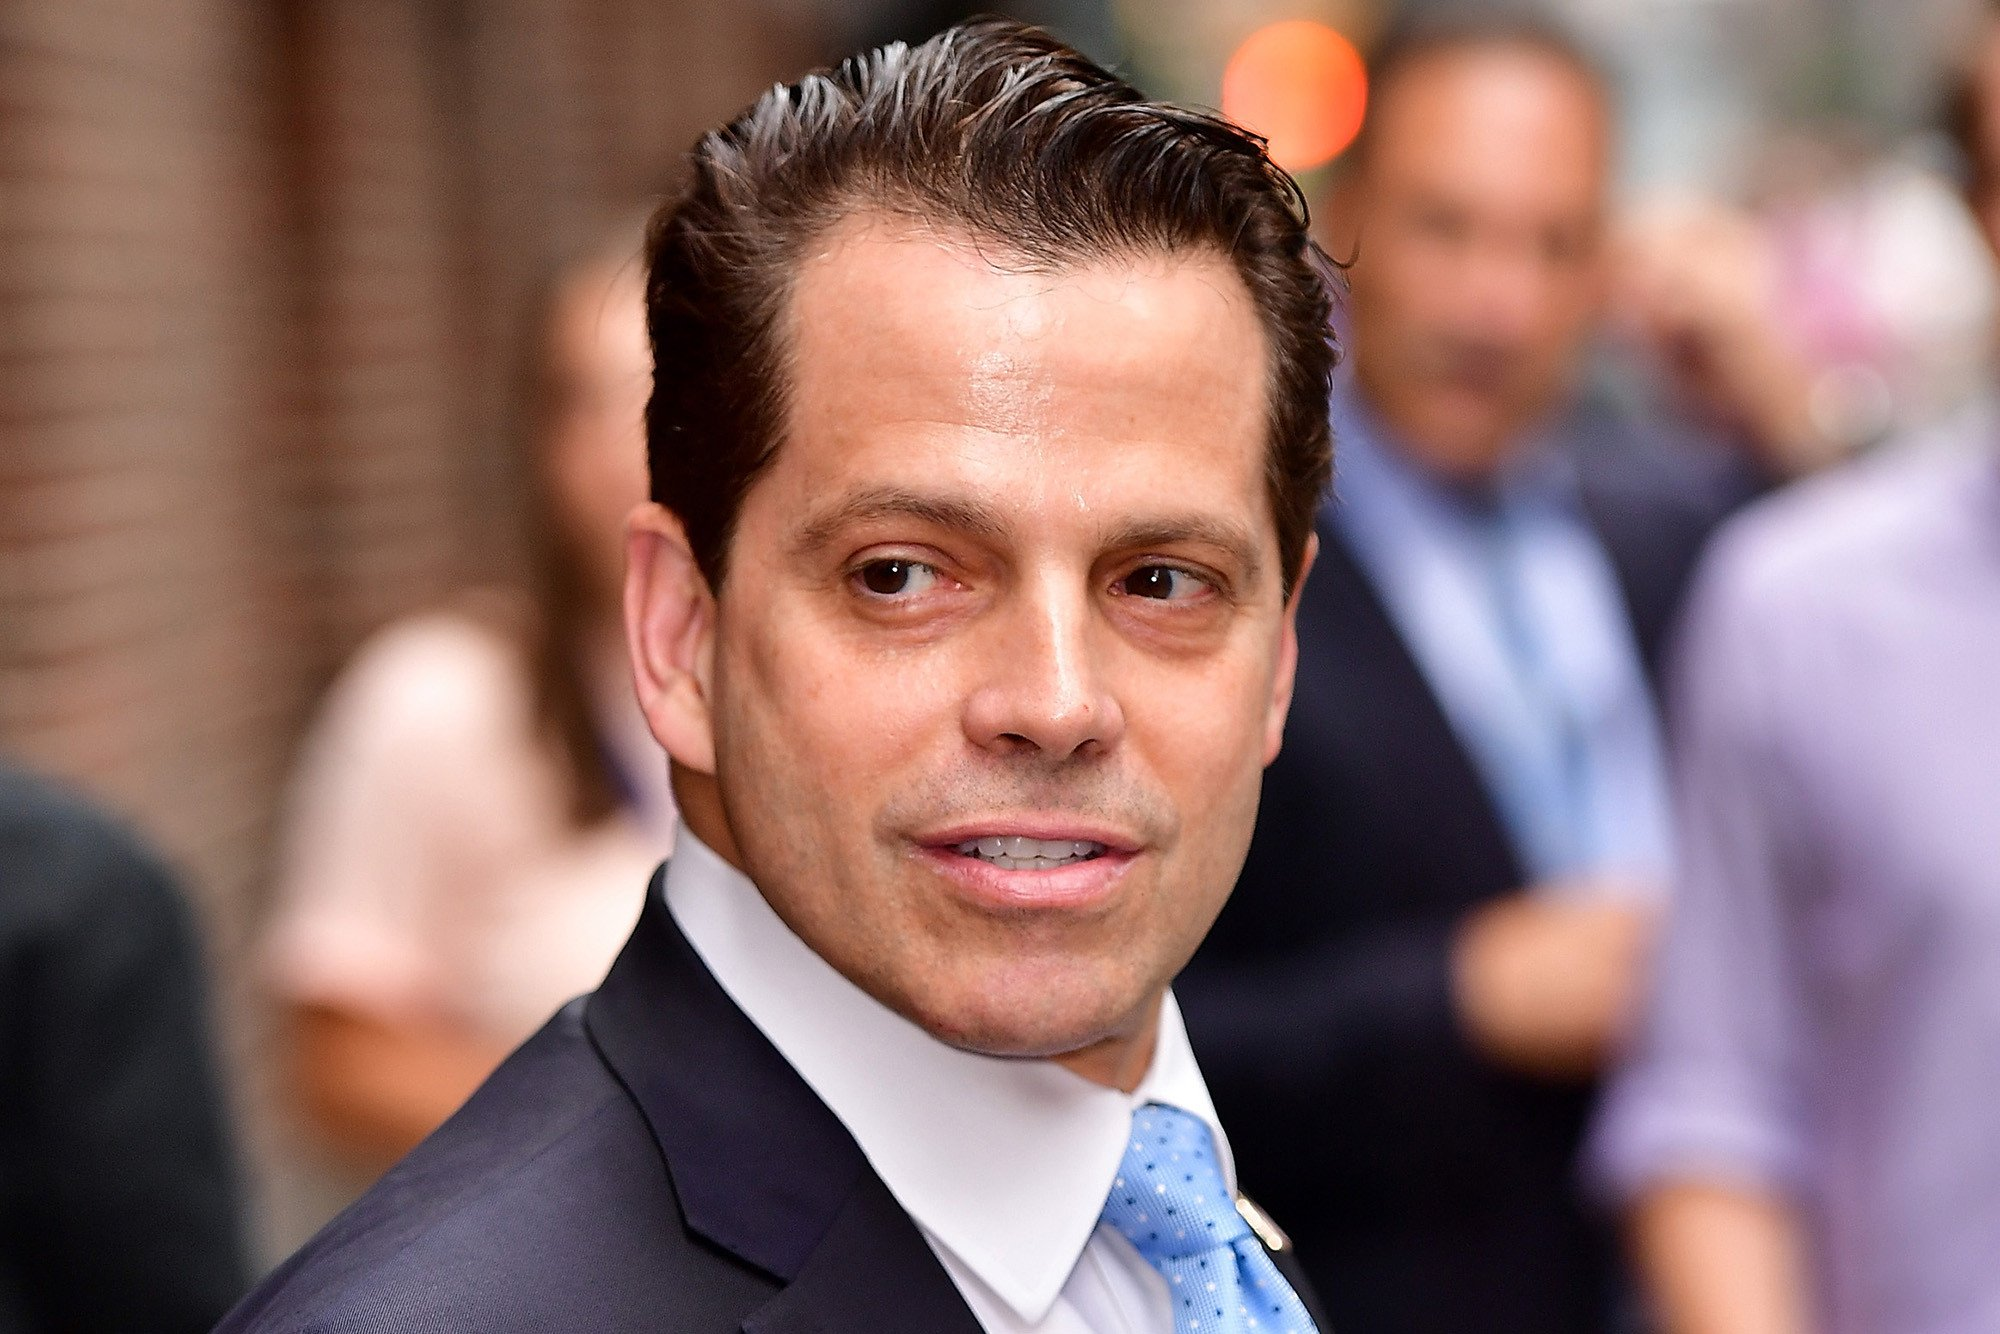 Scaramucci's SkyBridge Capital deal still in limbo after a year